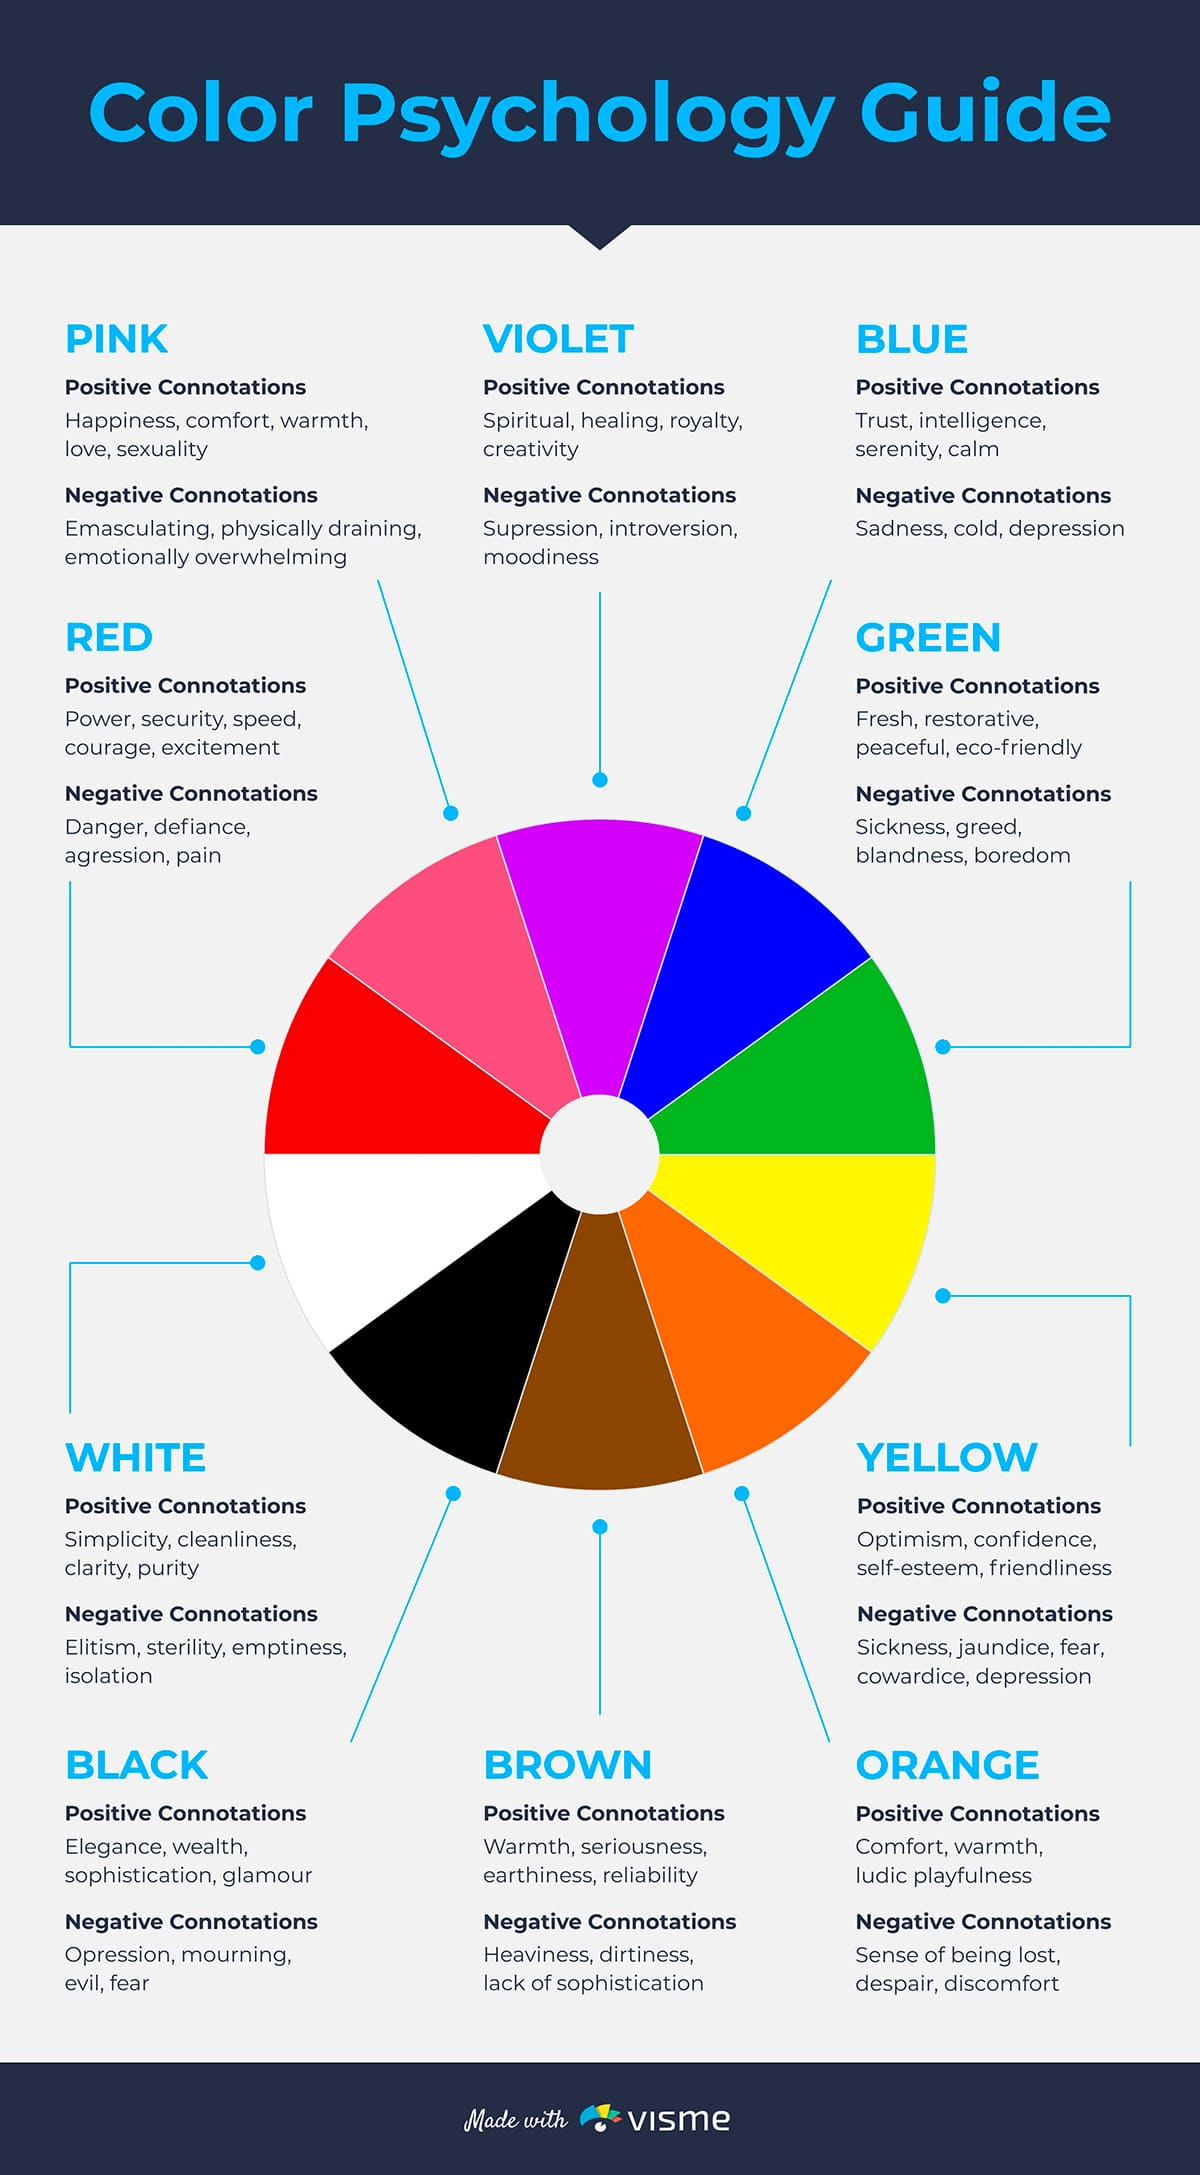 10 Graphic Design Tips for beginners in 2021 - Branding Centres - Marketing & Branding Solutions - Psychology of colours